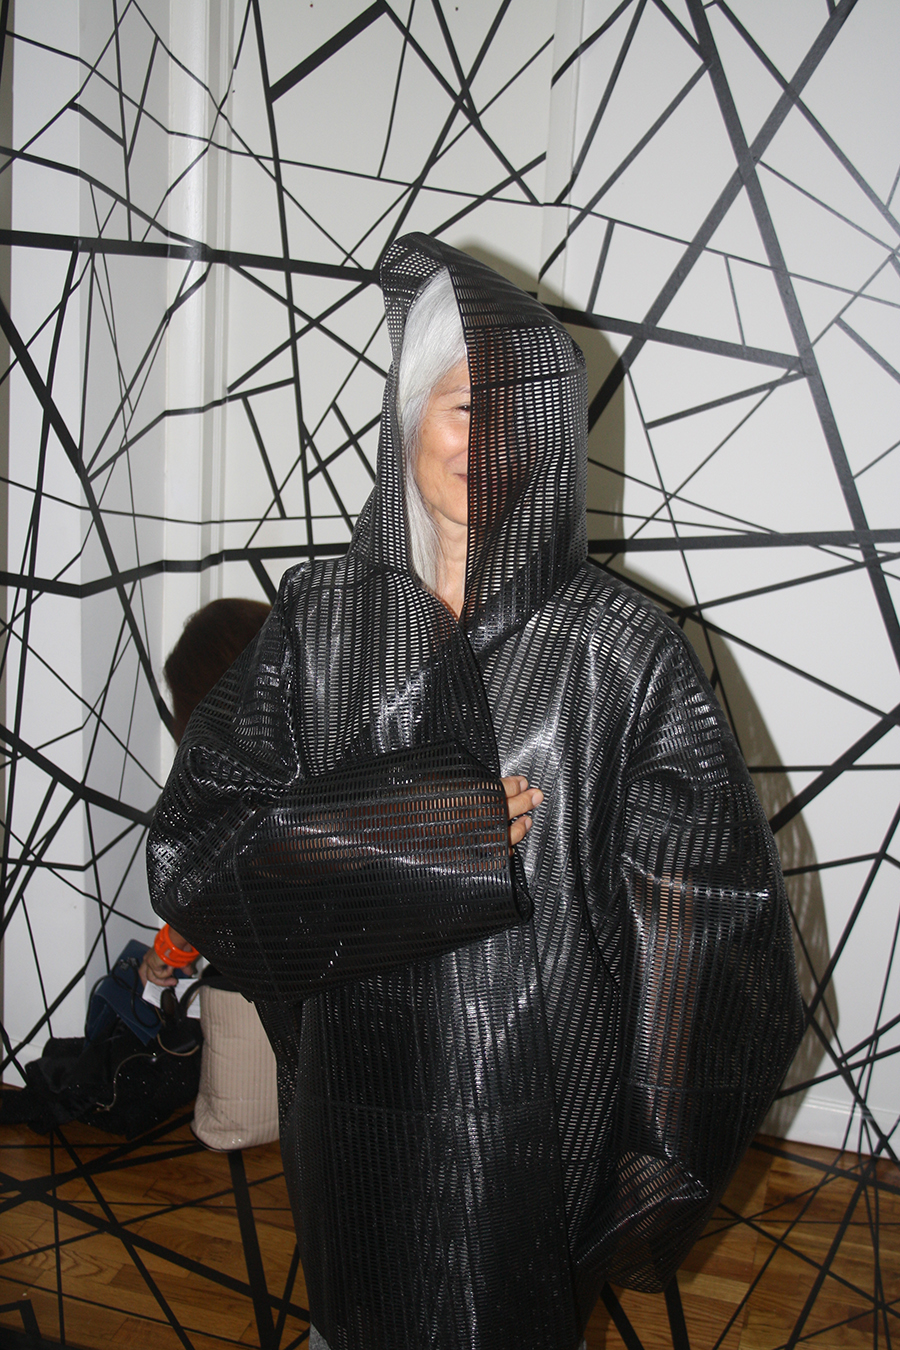 heisel-3-d-fashion-installation_scott-taylor-and-sylvia-heisel